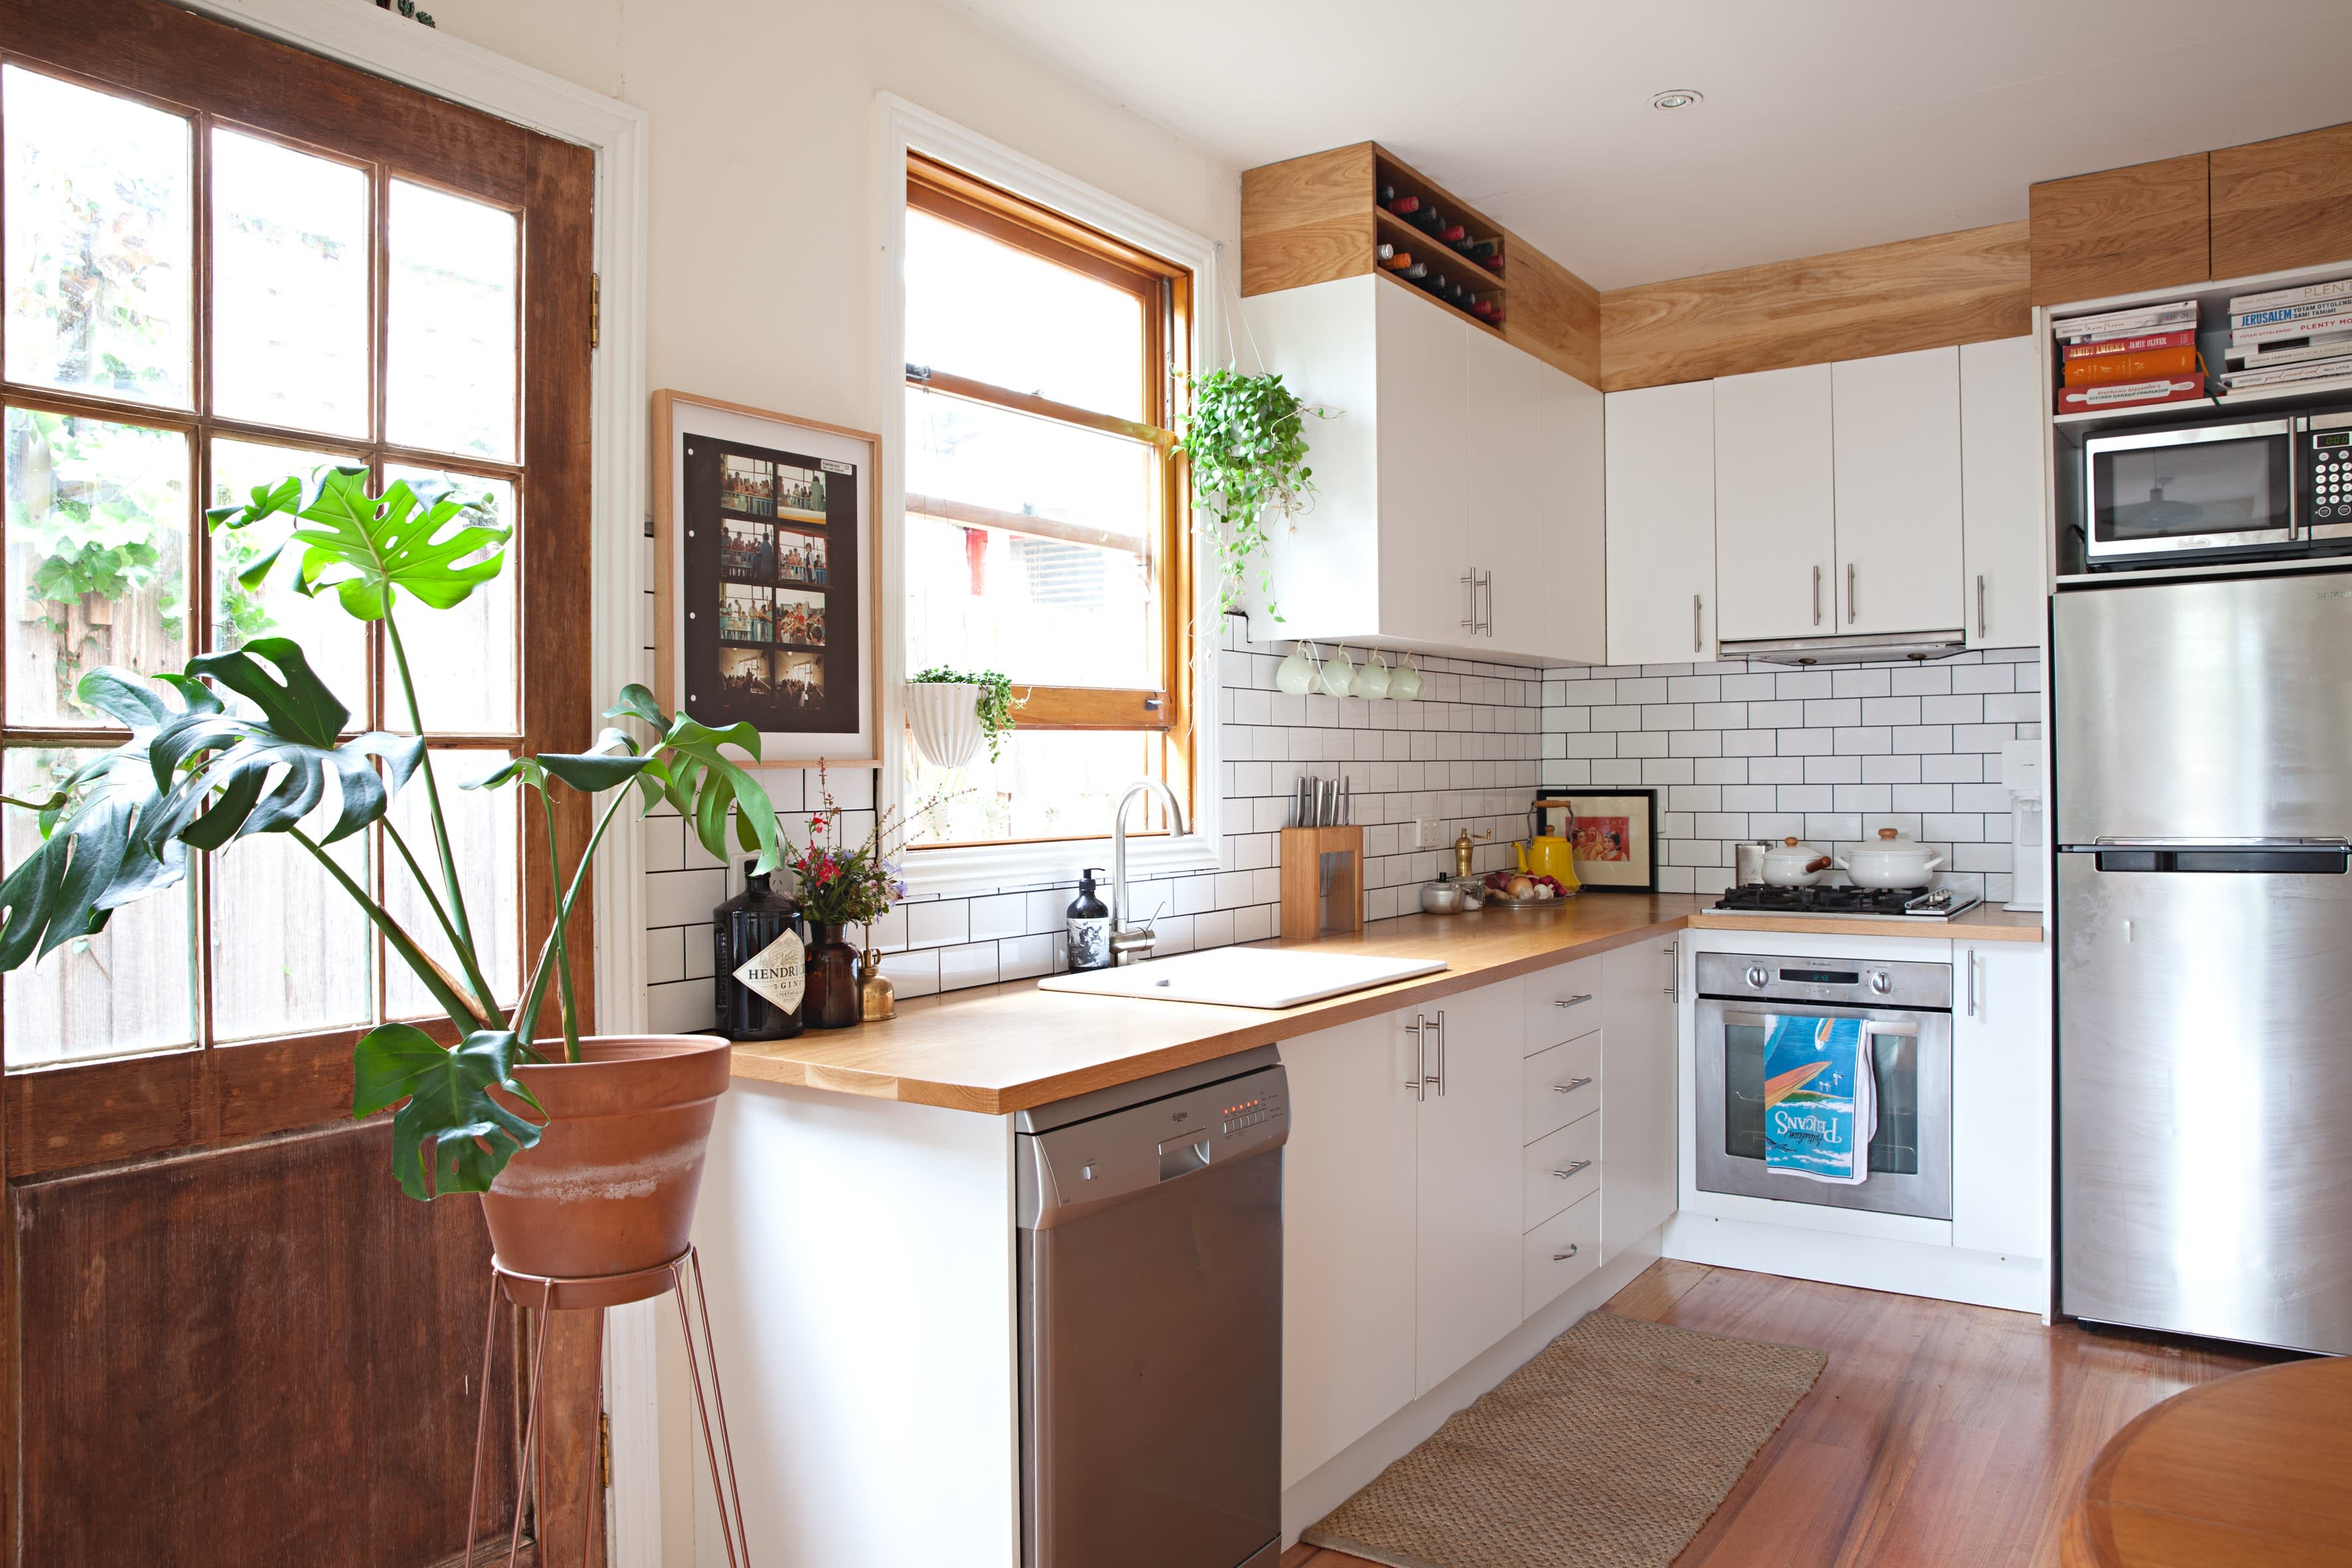 Kitchen Cabinet Soffit Space Ideas | Apartment Therapy